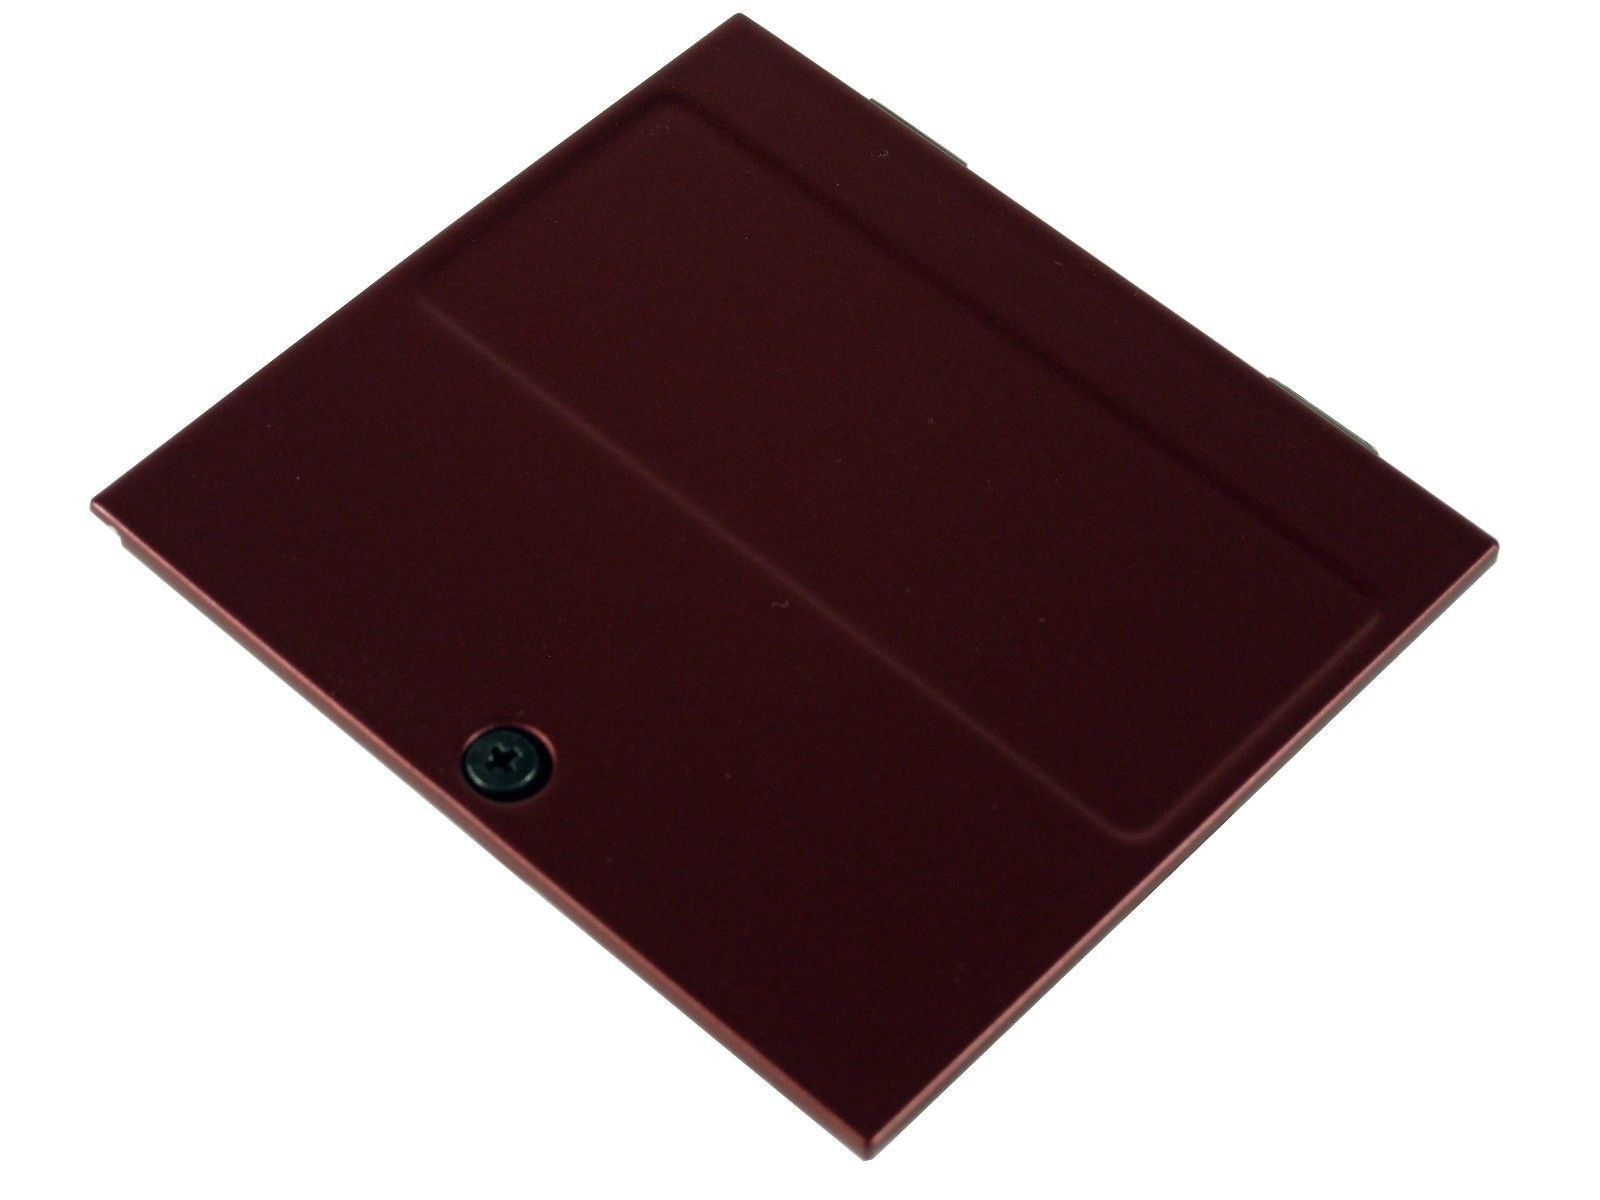 Dell N729D Latitude E4300 Minicard WiFi Wireless Base Cover Door (Red)